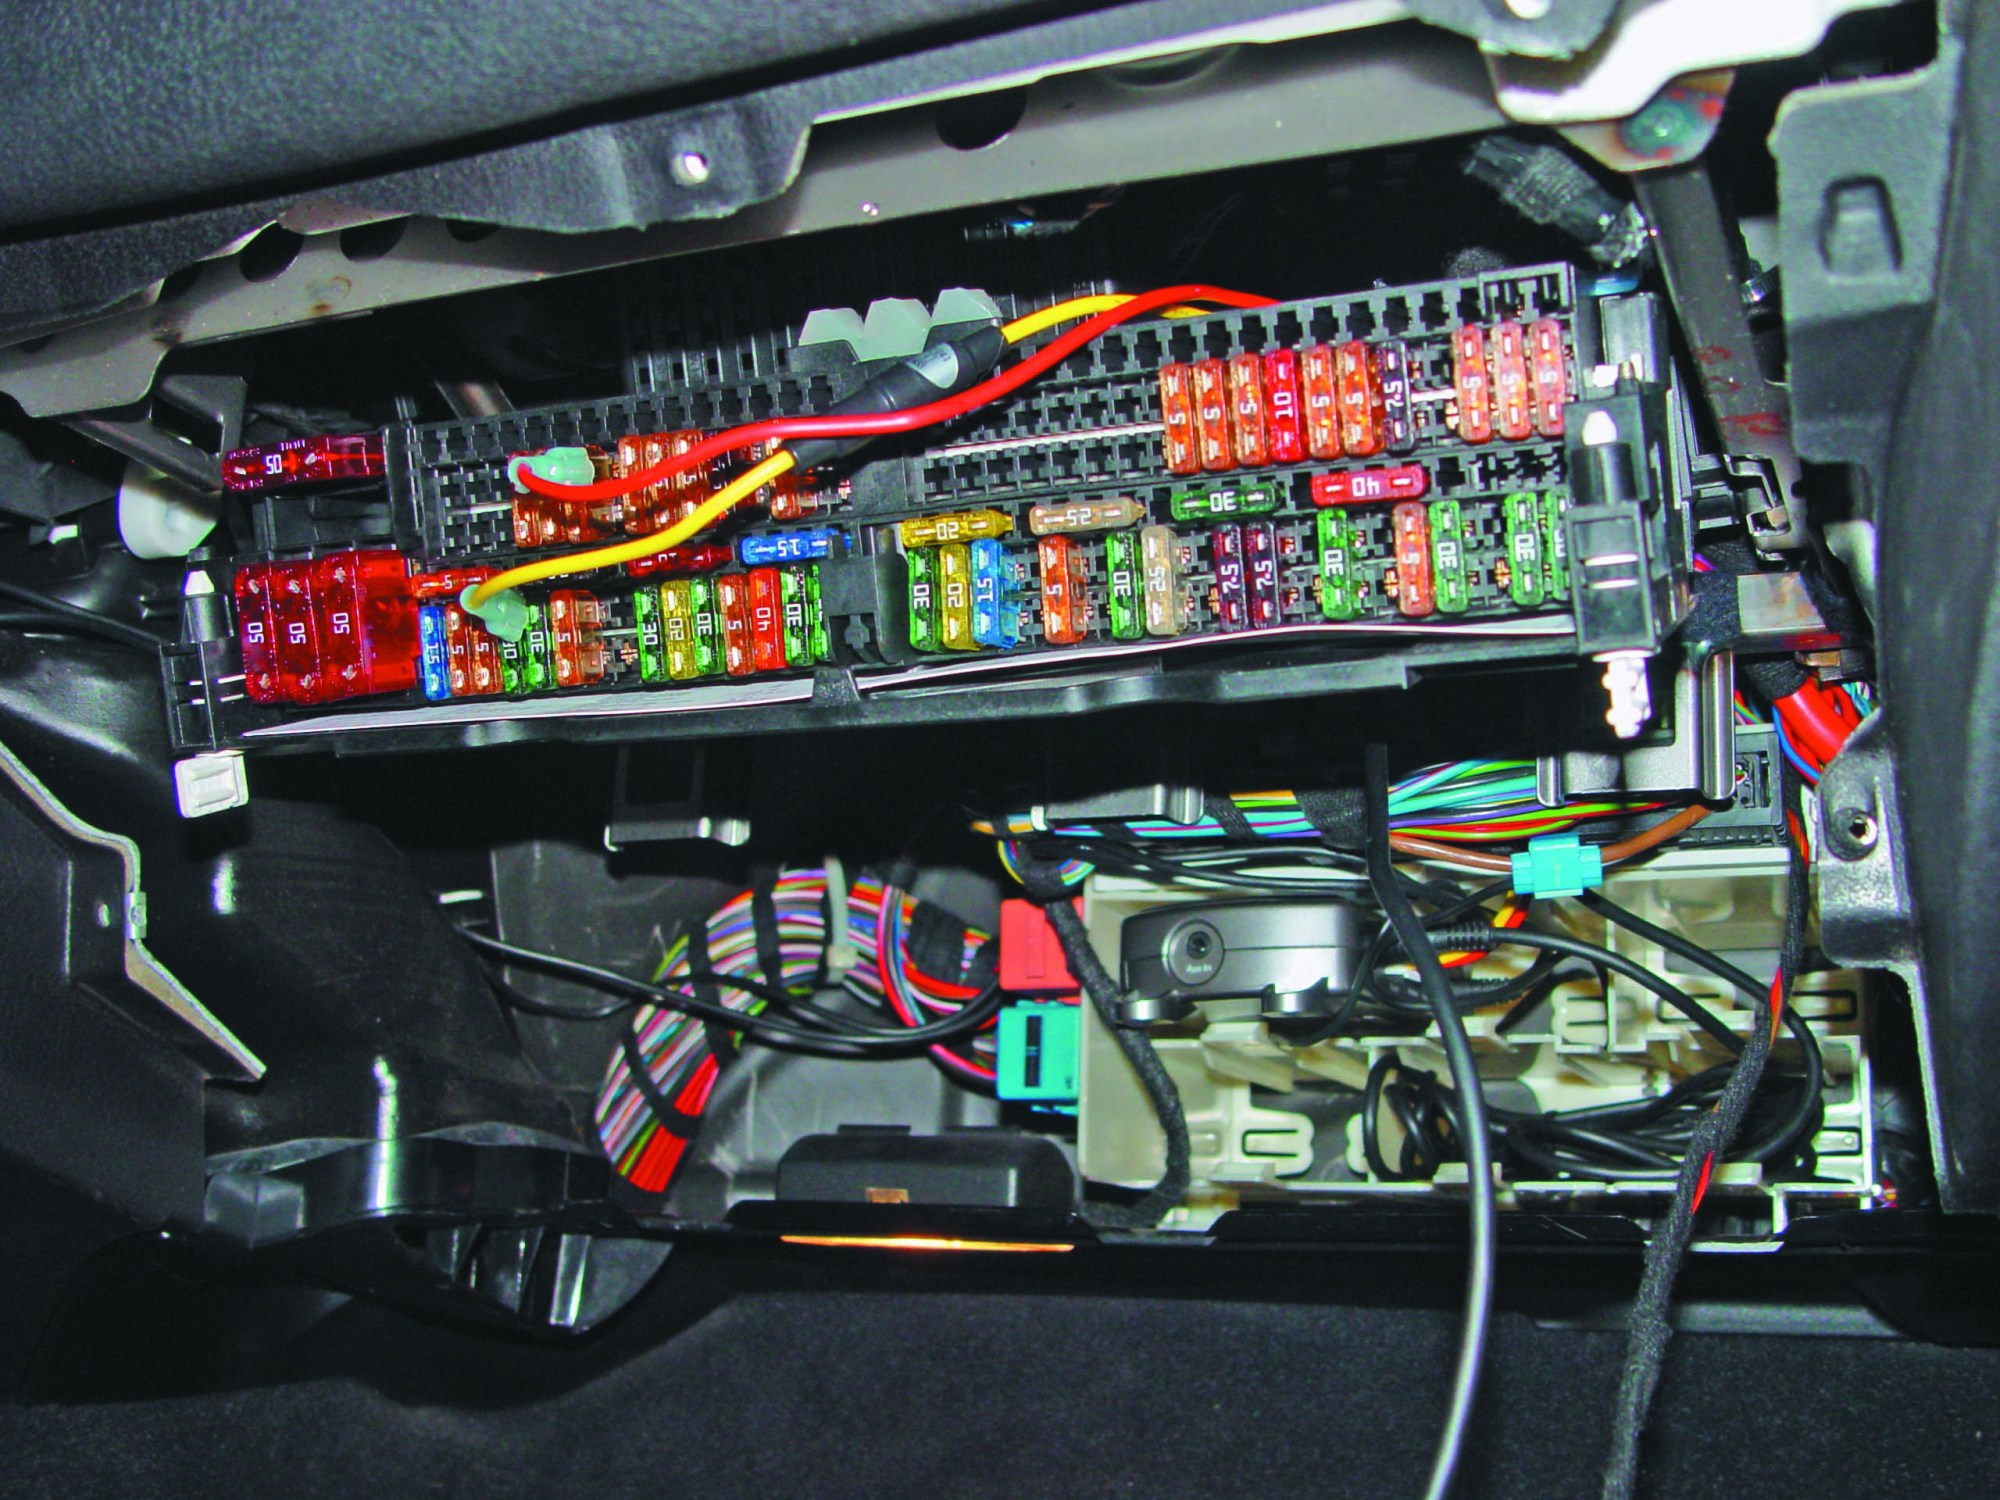 hight resolution of for the 2007 scion tc stereo wiring diagram 2007 scion tc scion xb radio wiring diagram